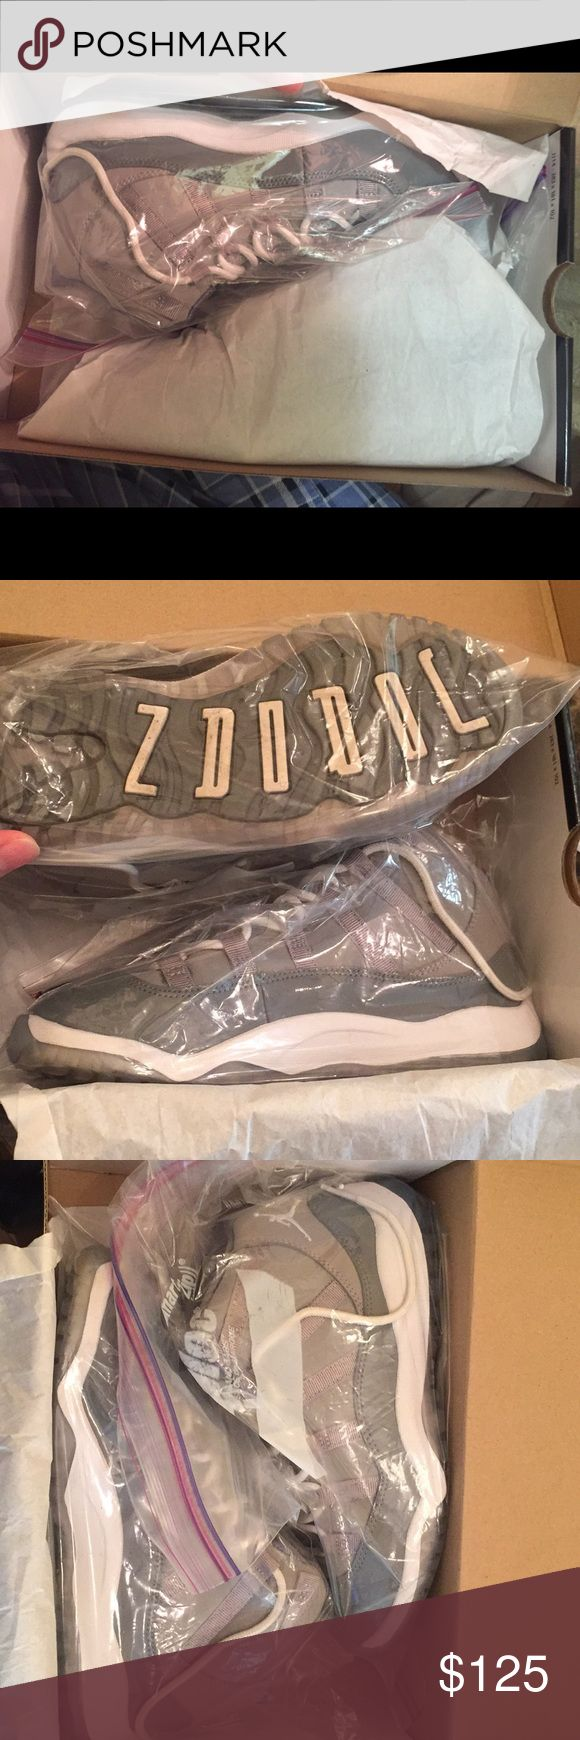 Retro Jordan 11 Cool Grey Size 2 1/2 Retro Jordan 11 Cool Grey Size 2 1/2 as seen in pictures rarely worn . Shoes Sneakers